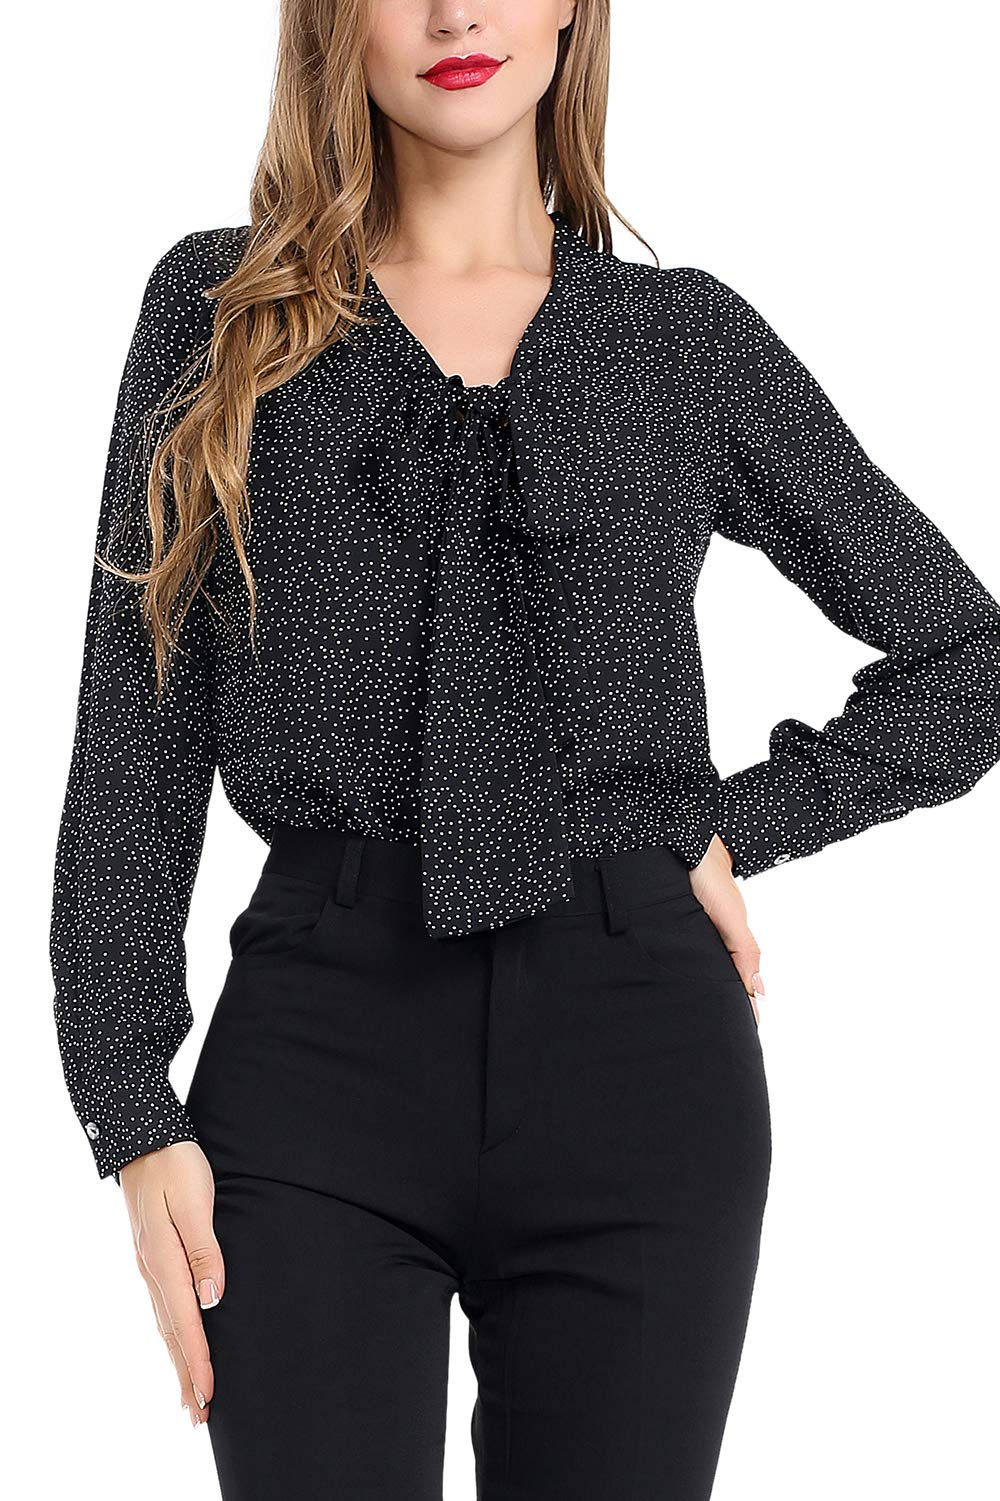 AUQCO Women's Chiffon Blouse Business Button Down Shirt for Work Casual with Long Sleeve/Sleeveless Black